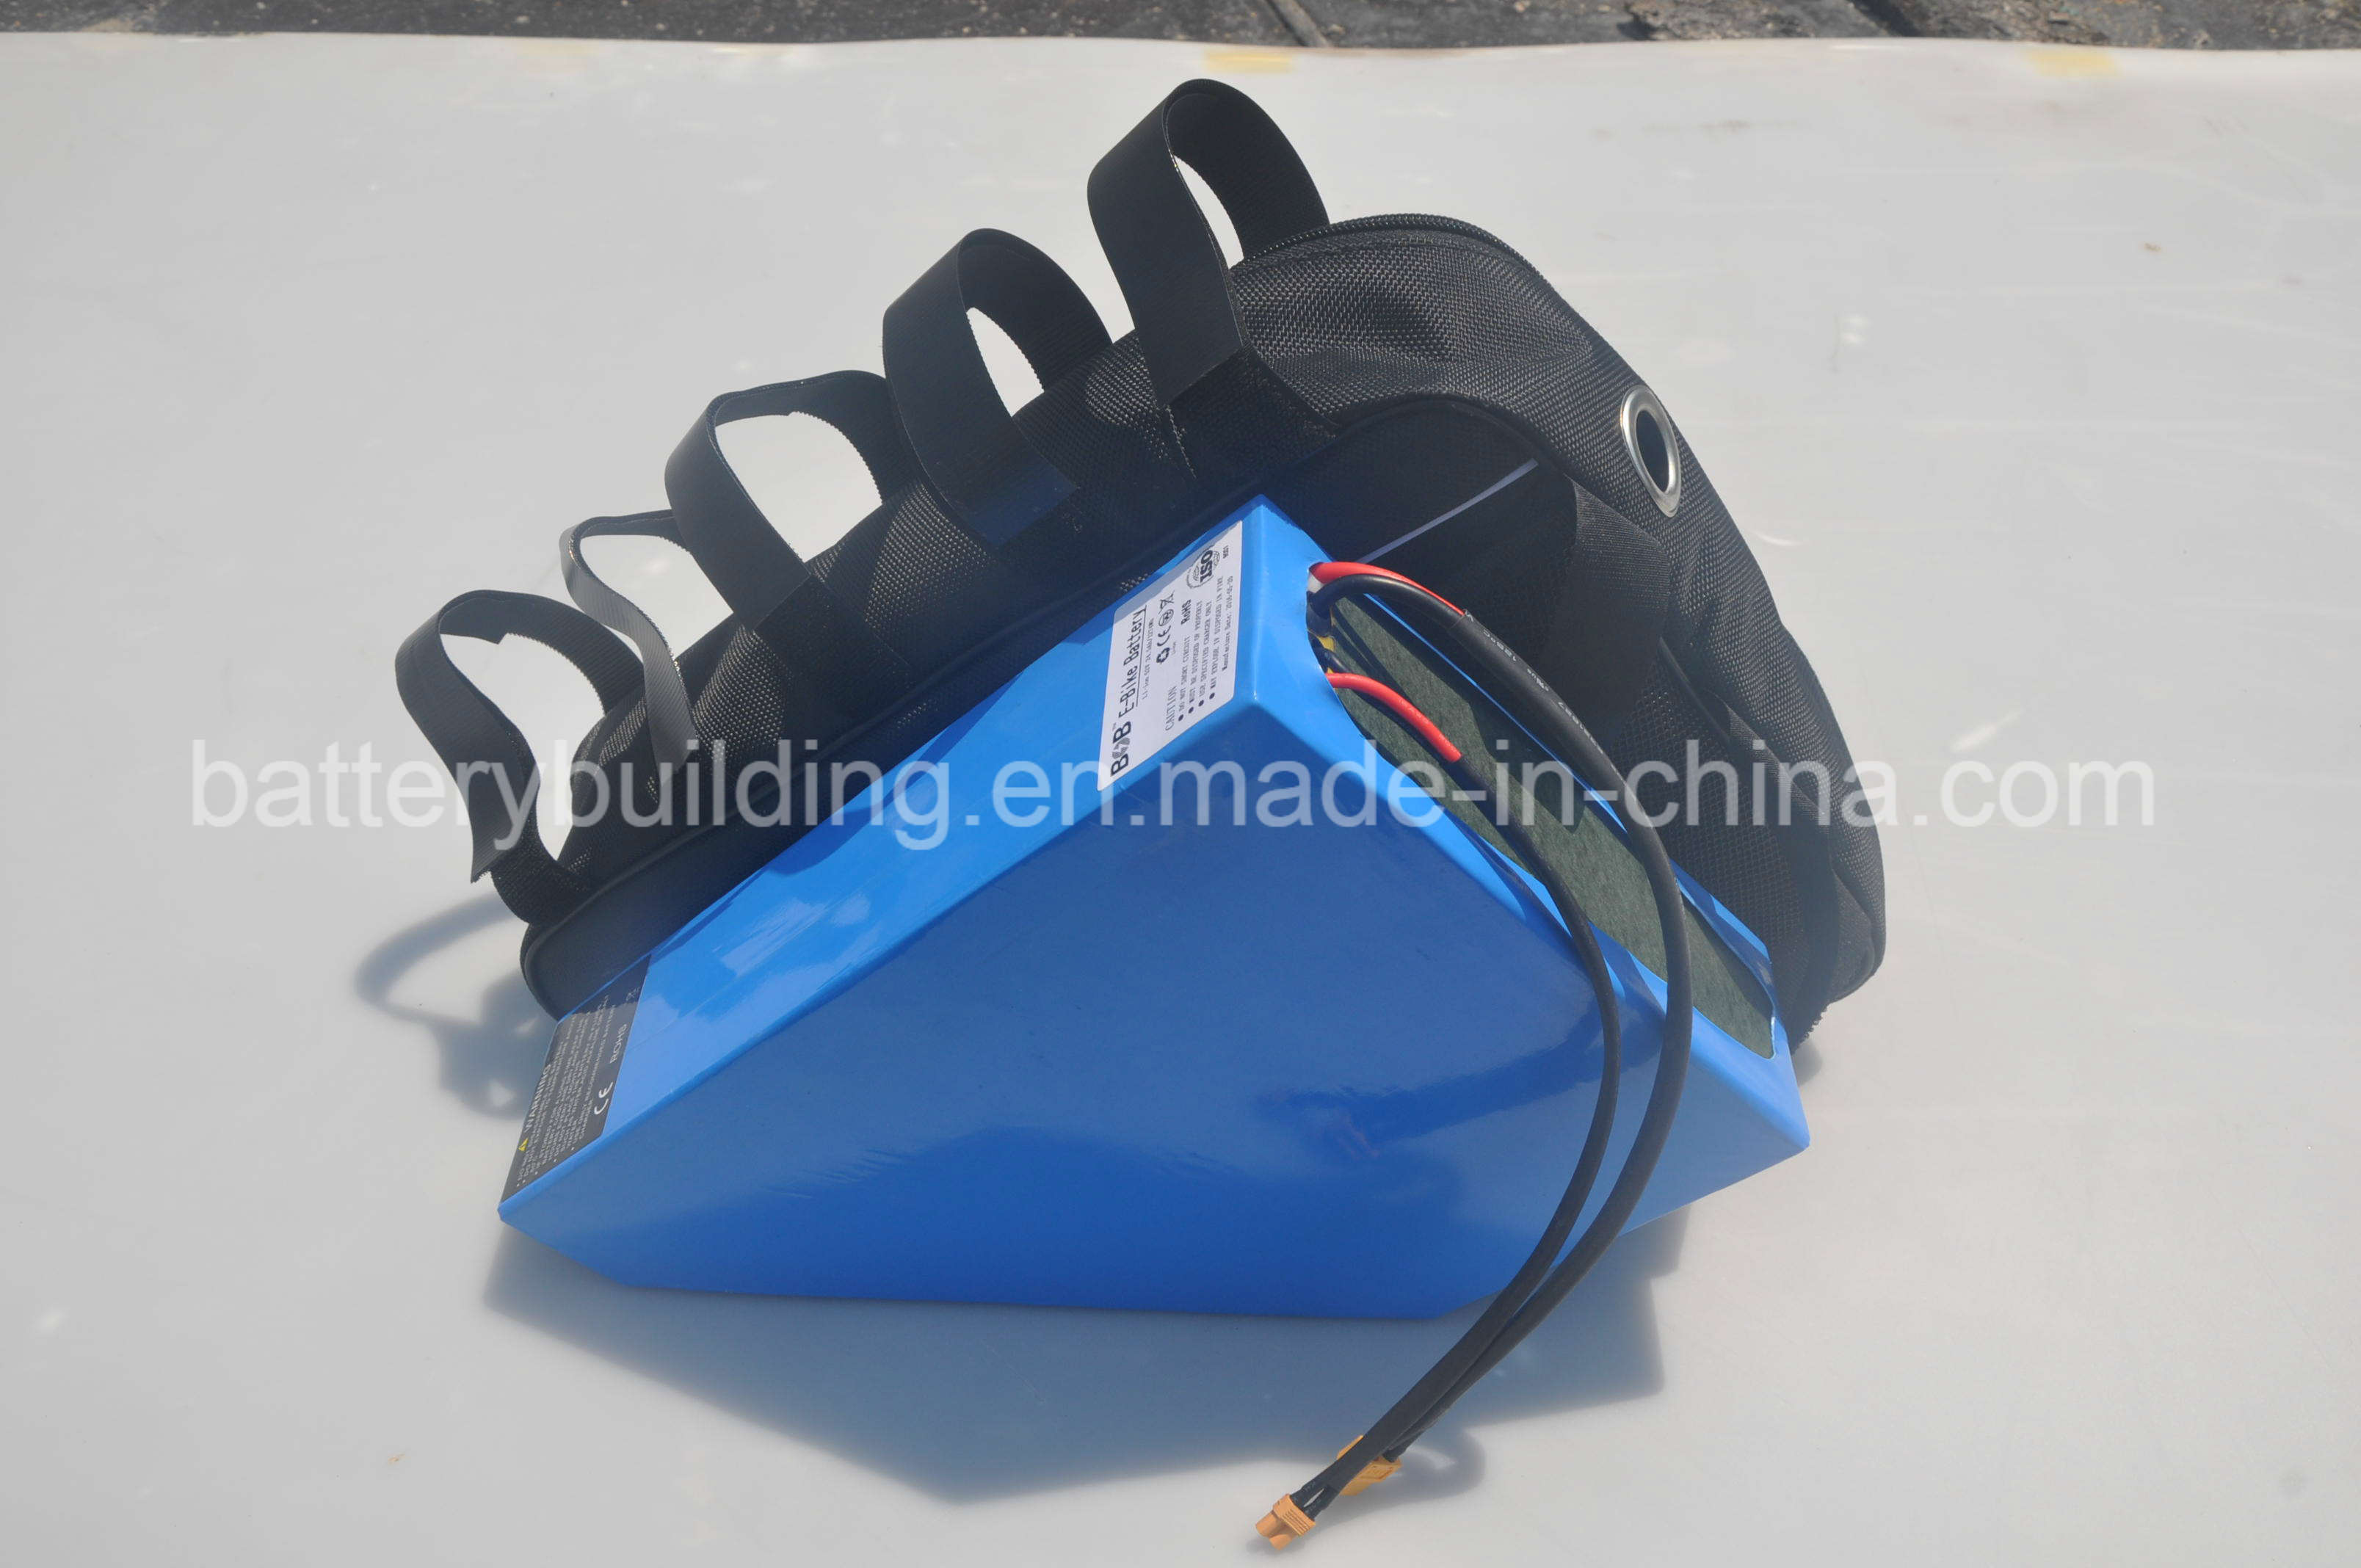 New Arrival Triangle 48V 20ah Lithium Battery Pack for Electric Bike with 13s8p